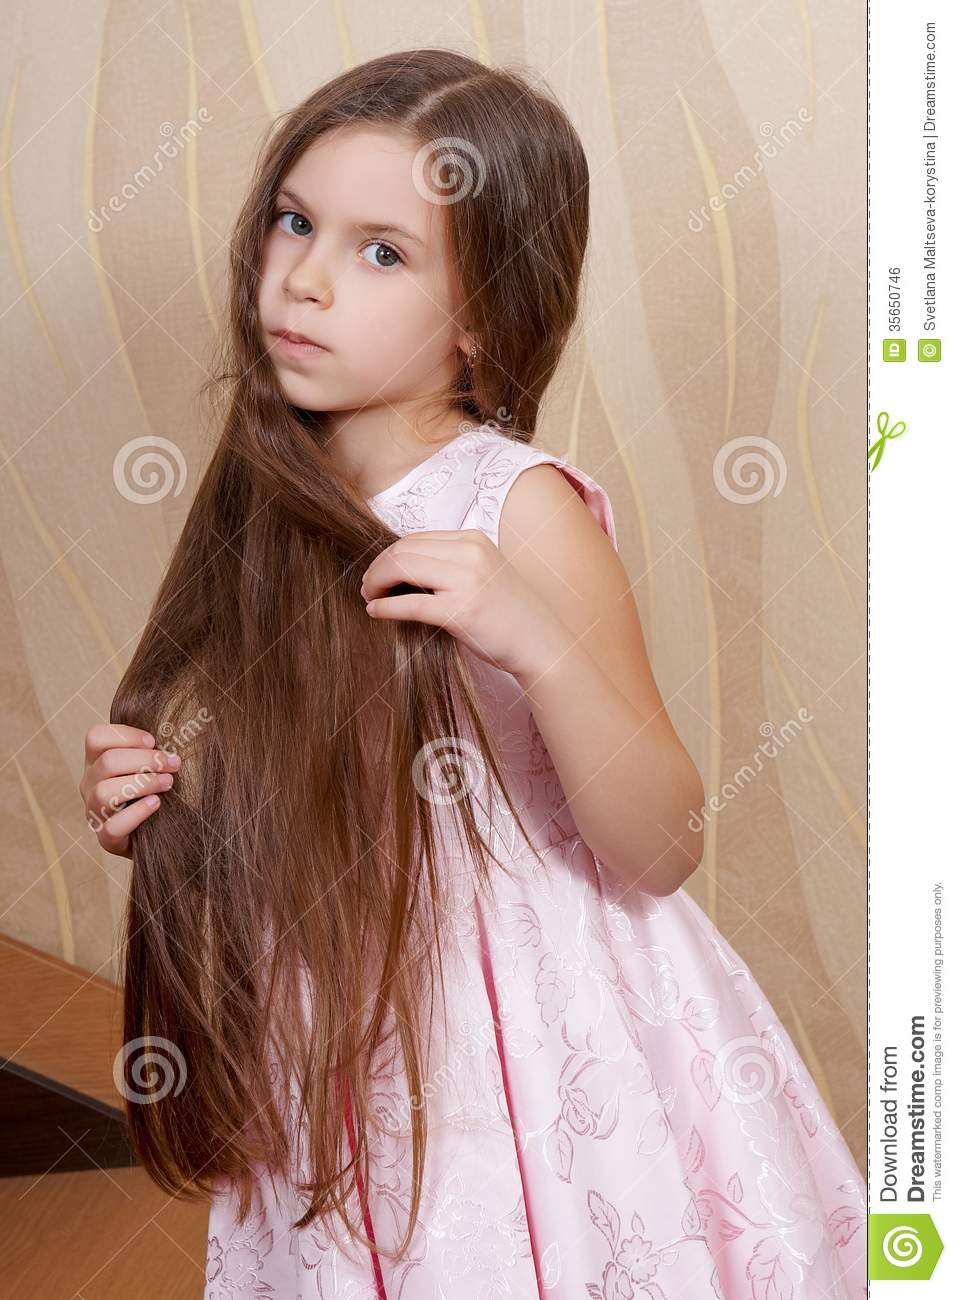 Little Girl With A Long Hair Royalty Free Stock Image